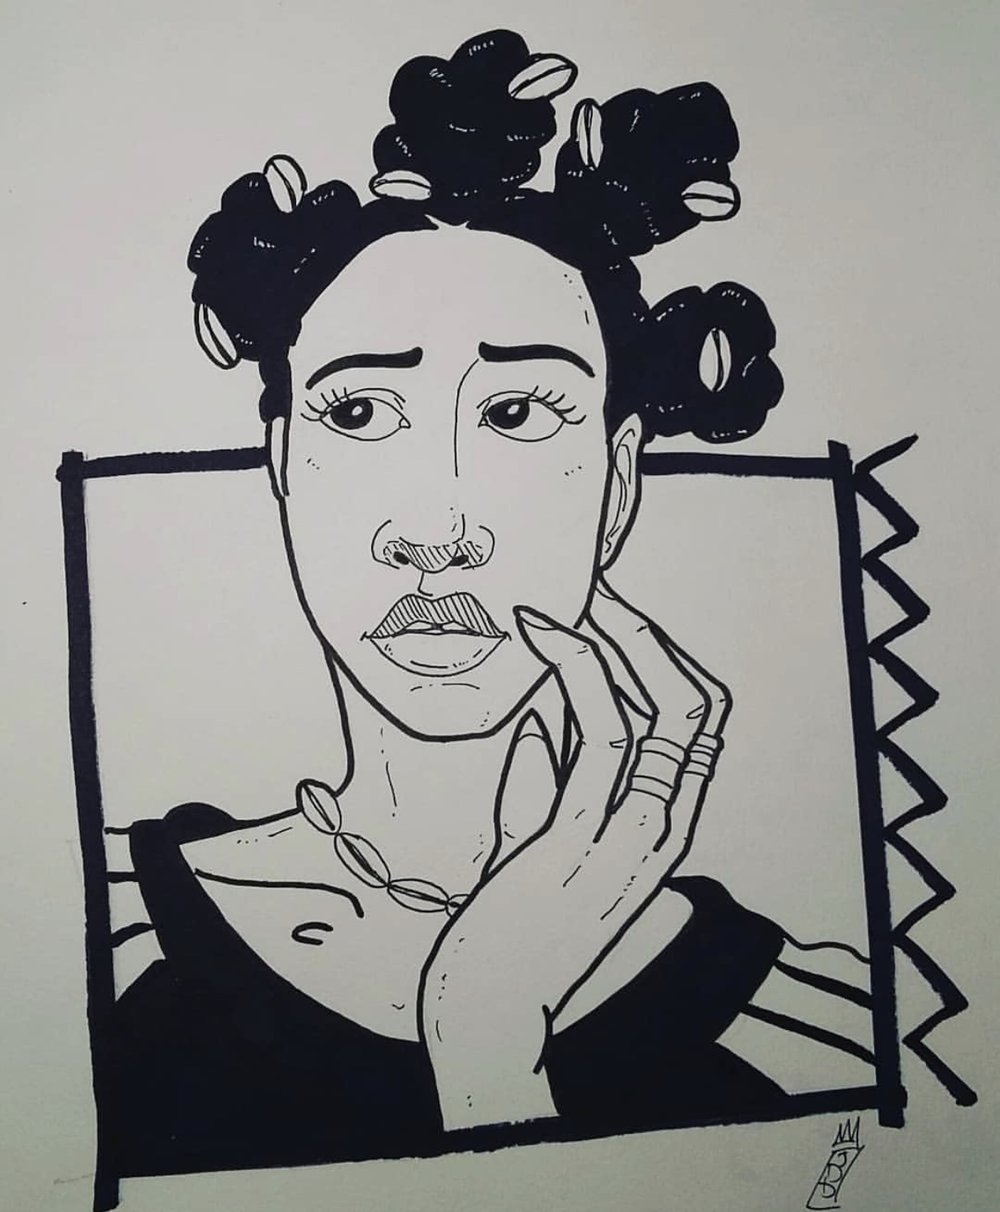 Jamila Woods - Jakeem Da Dream - This piece was inspired by my love and admiration for black women. Those melanin filled, sunkissed, mothers of creation. I feel Jamila Woods is a shining example of black girl magic, with her empowering music. Promoting self love in a world constantly telling black women they are not good enough, she is role model and a true blessing to us all.IG: @jakeemdadream